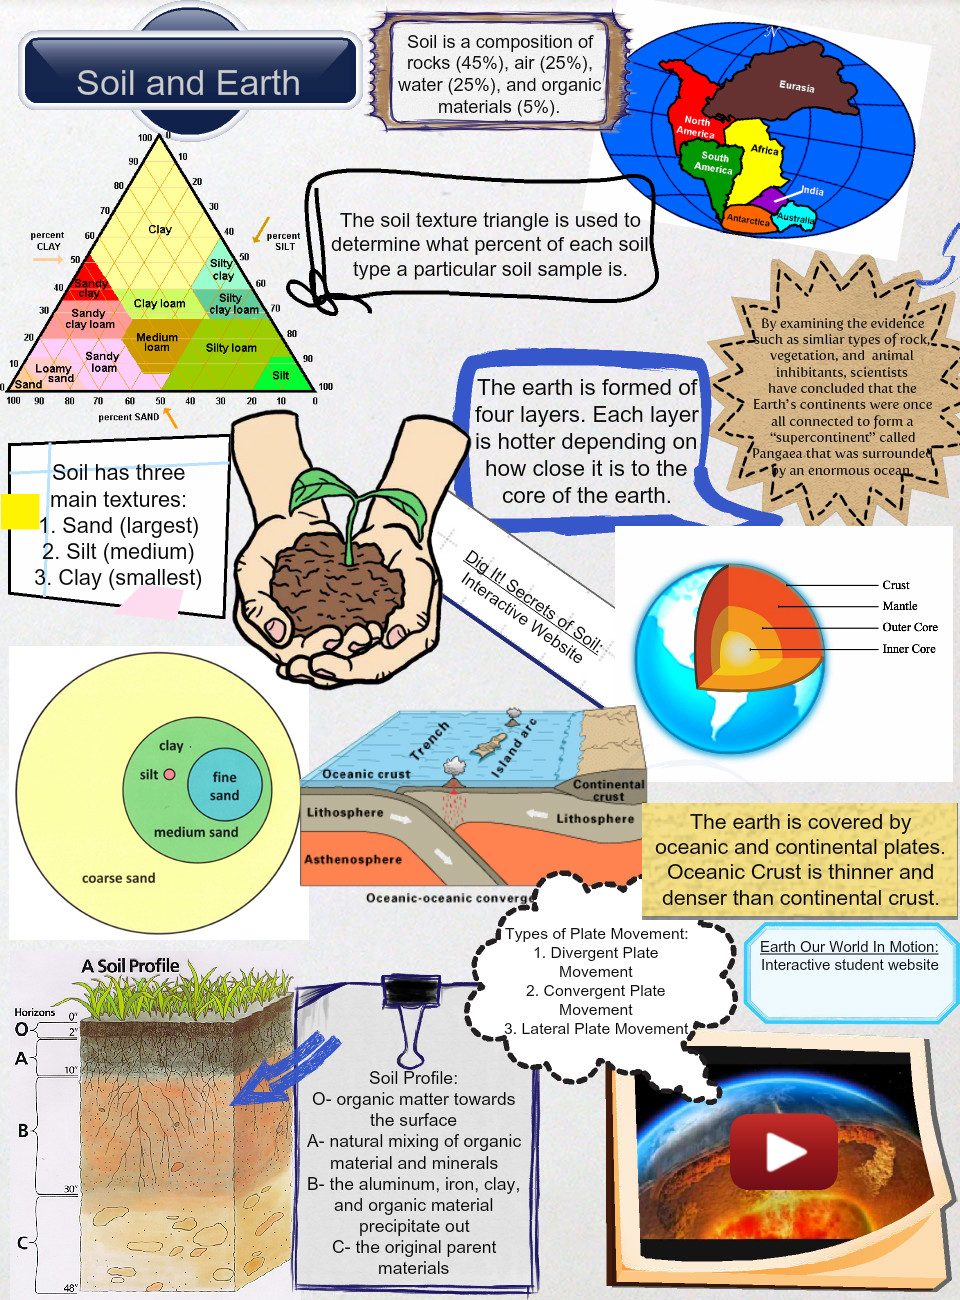 Soil and Earth